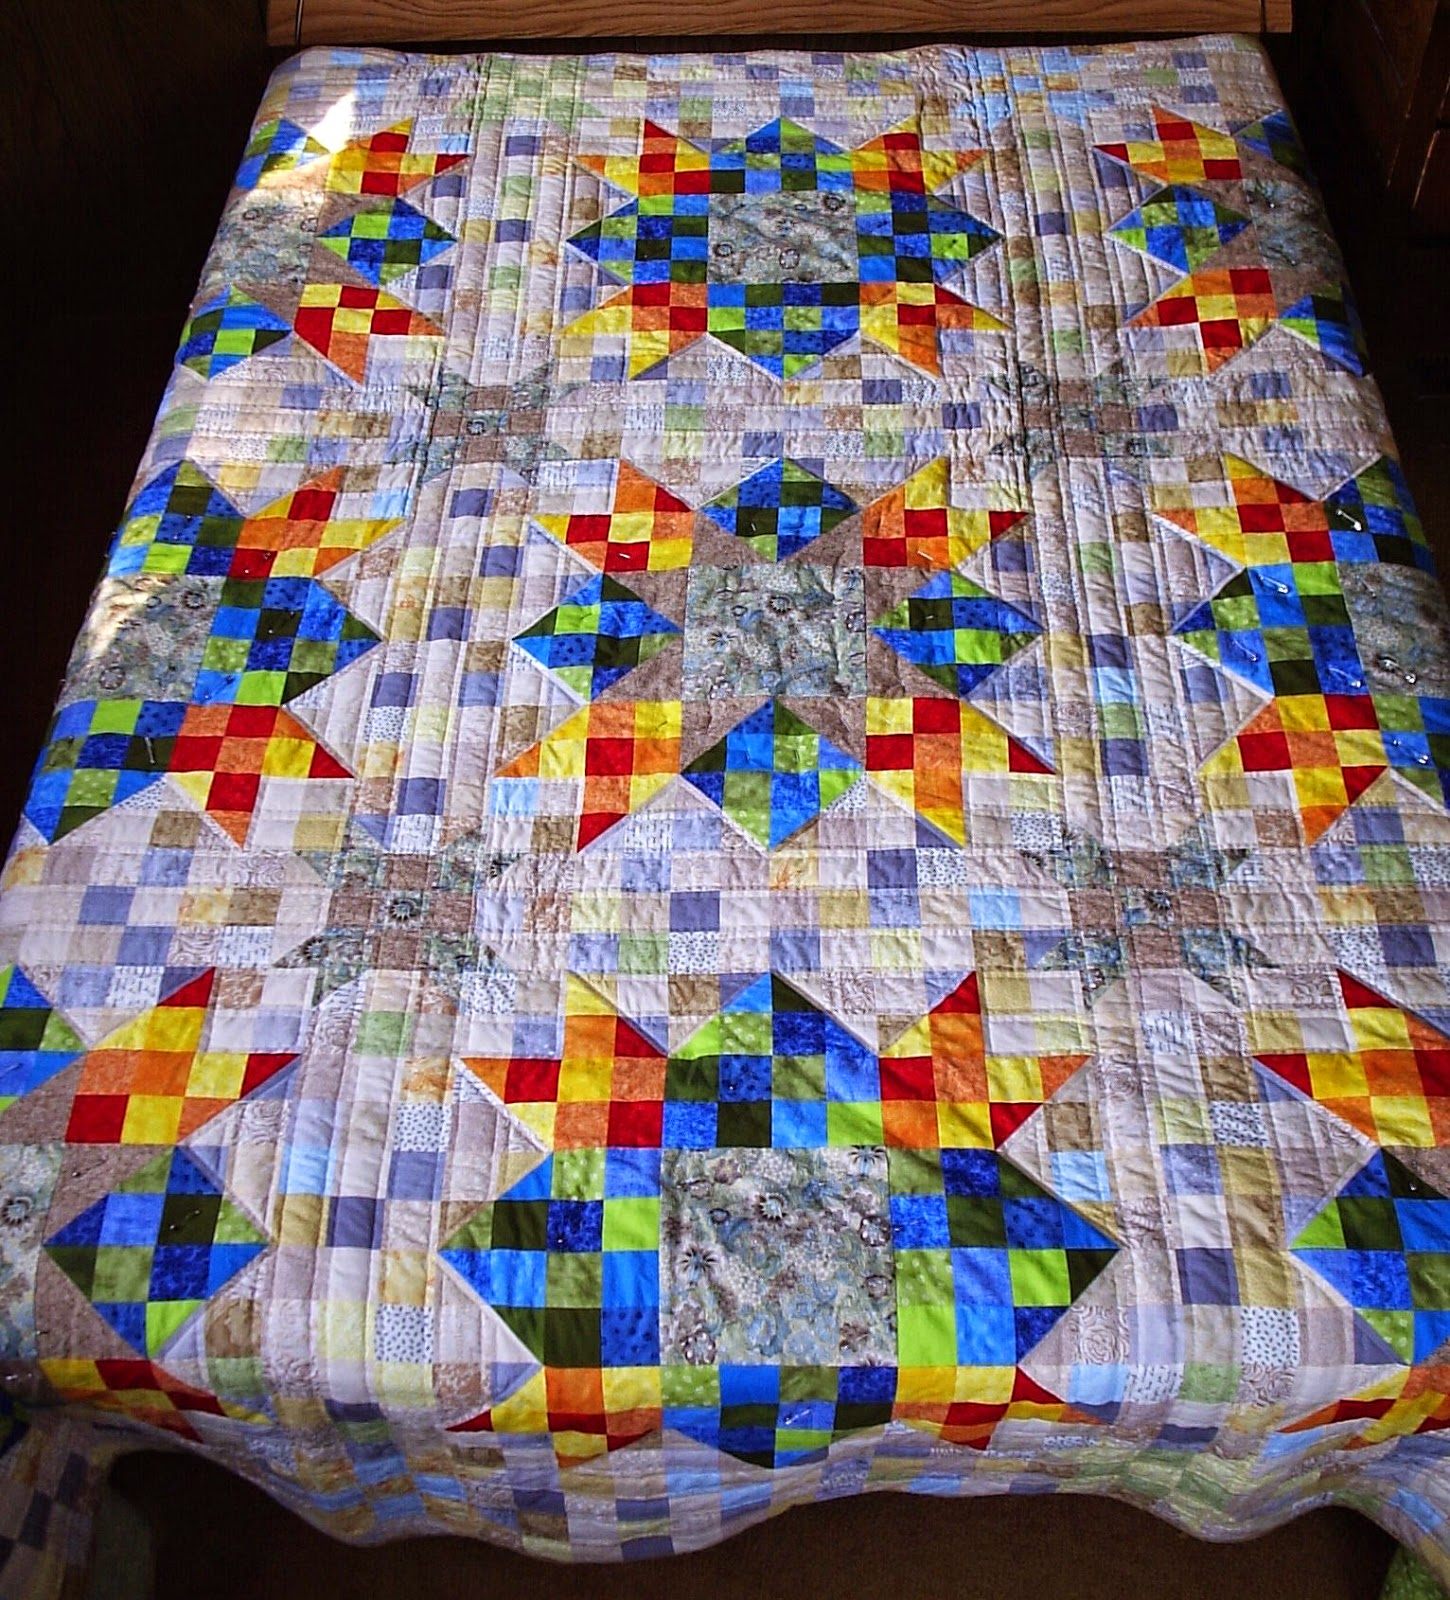 Sew Fresh Quilts: Top 10 Tips for New Quilters - Quilting with ... : quilting with a walking foot - Adamdwight.com